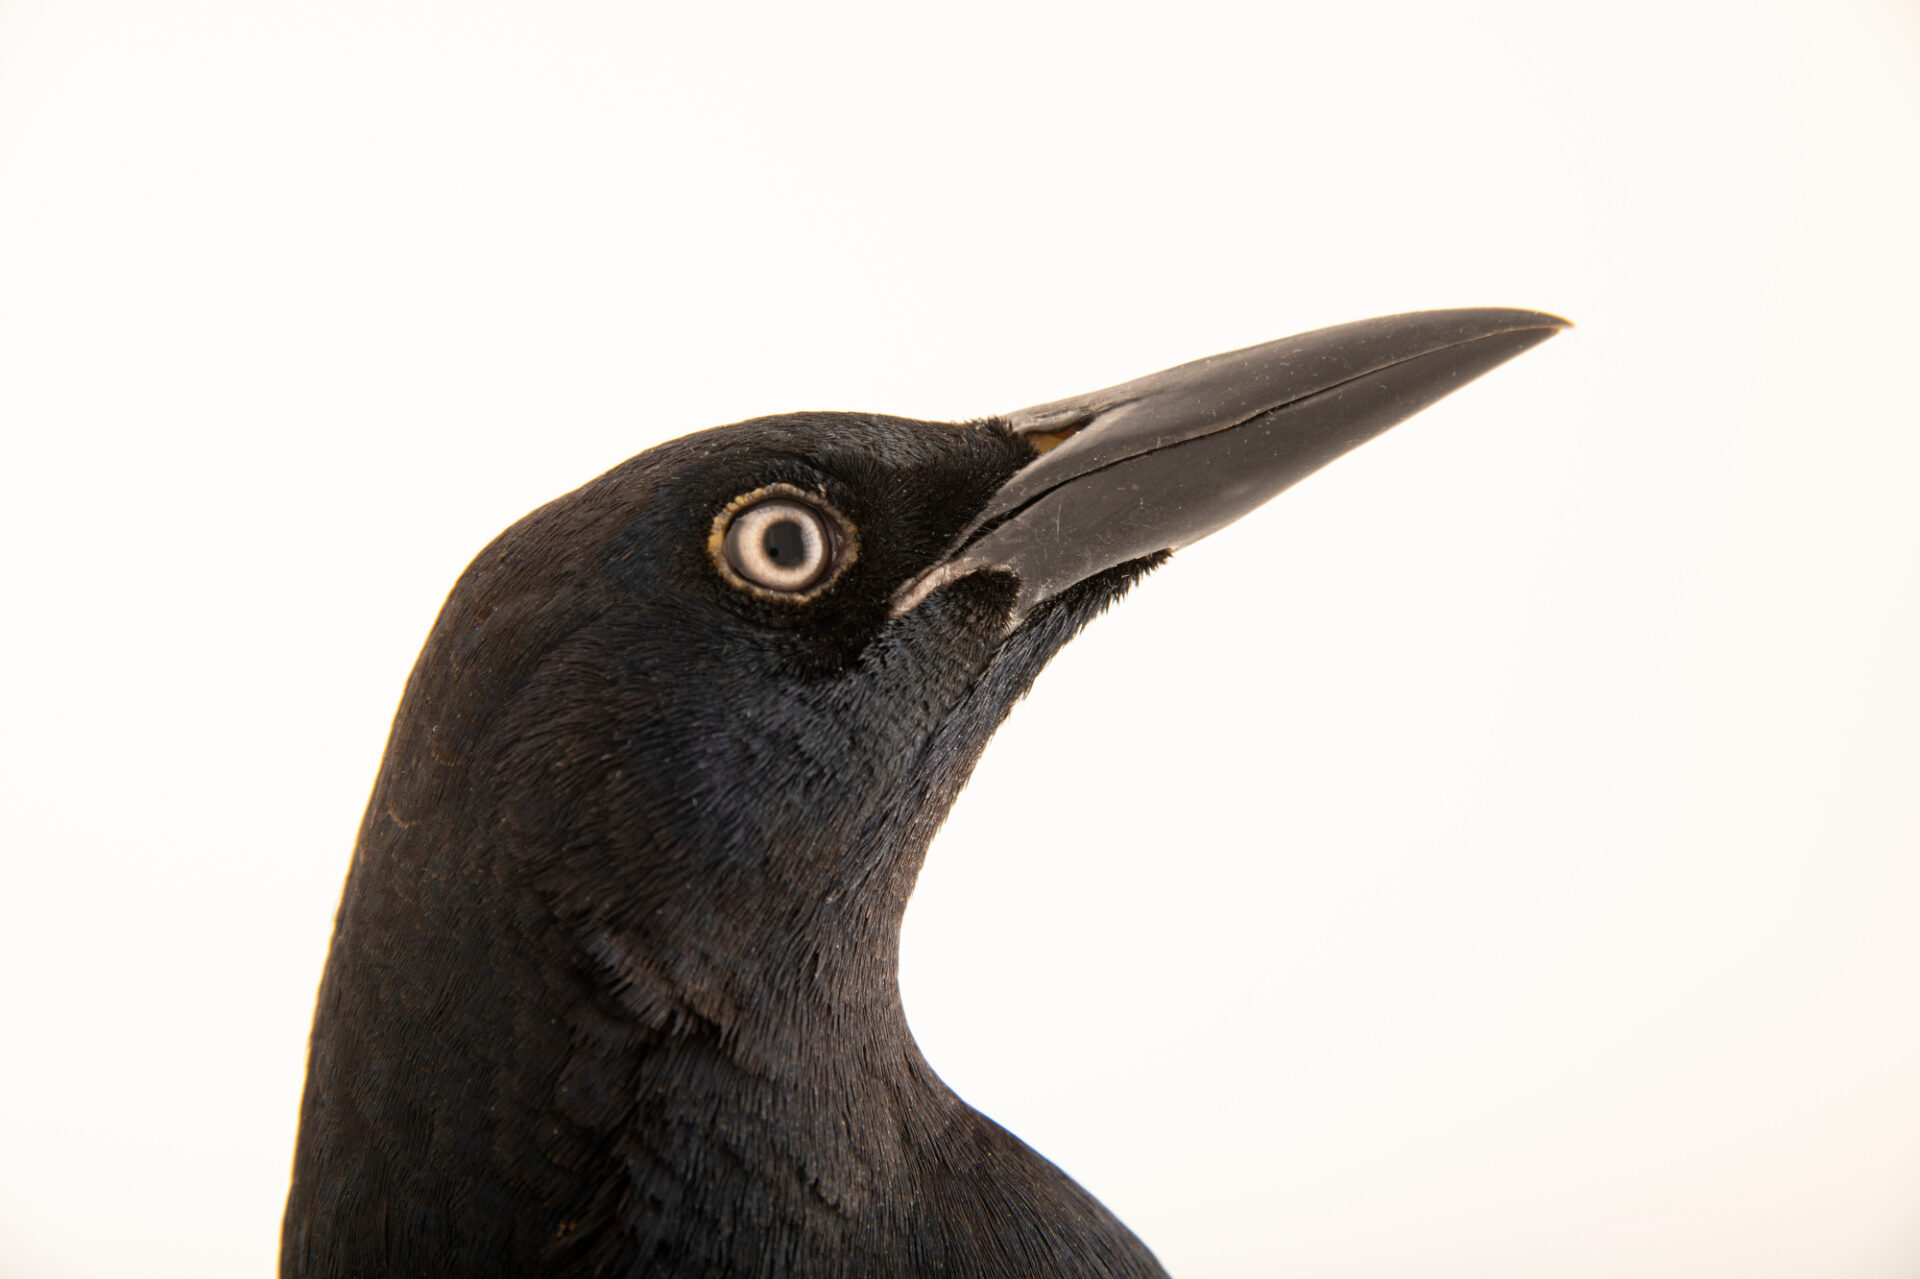 Photo: A great-tailed grackle (Quiscalus mexicanus prosopidicola) at Rogers Wildlife Rehabilitation in Hutchins, TX.